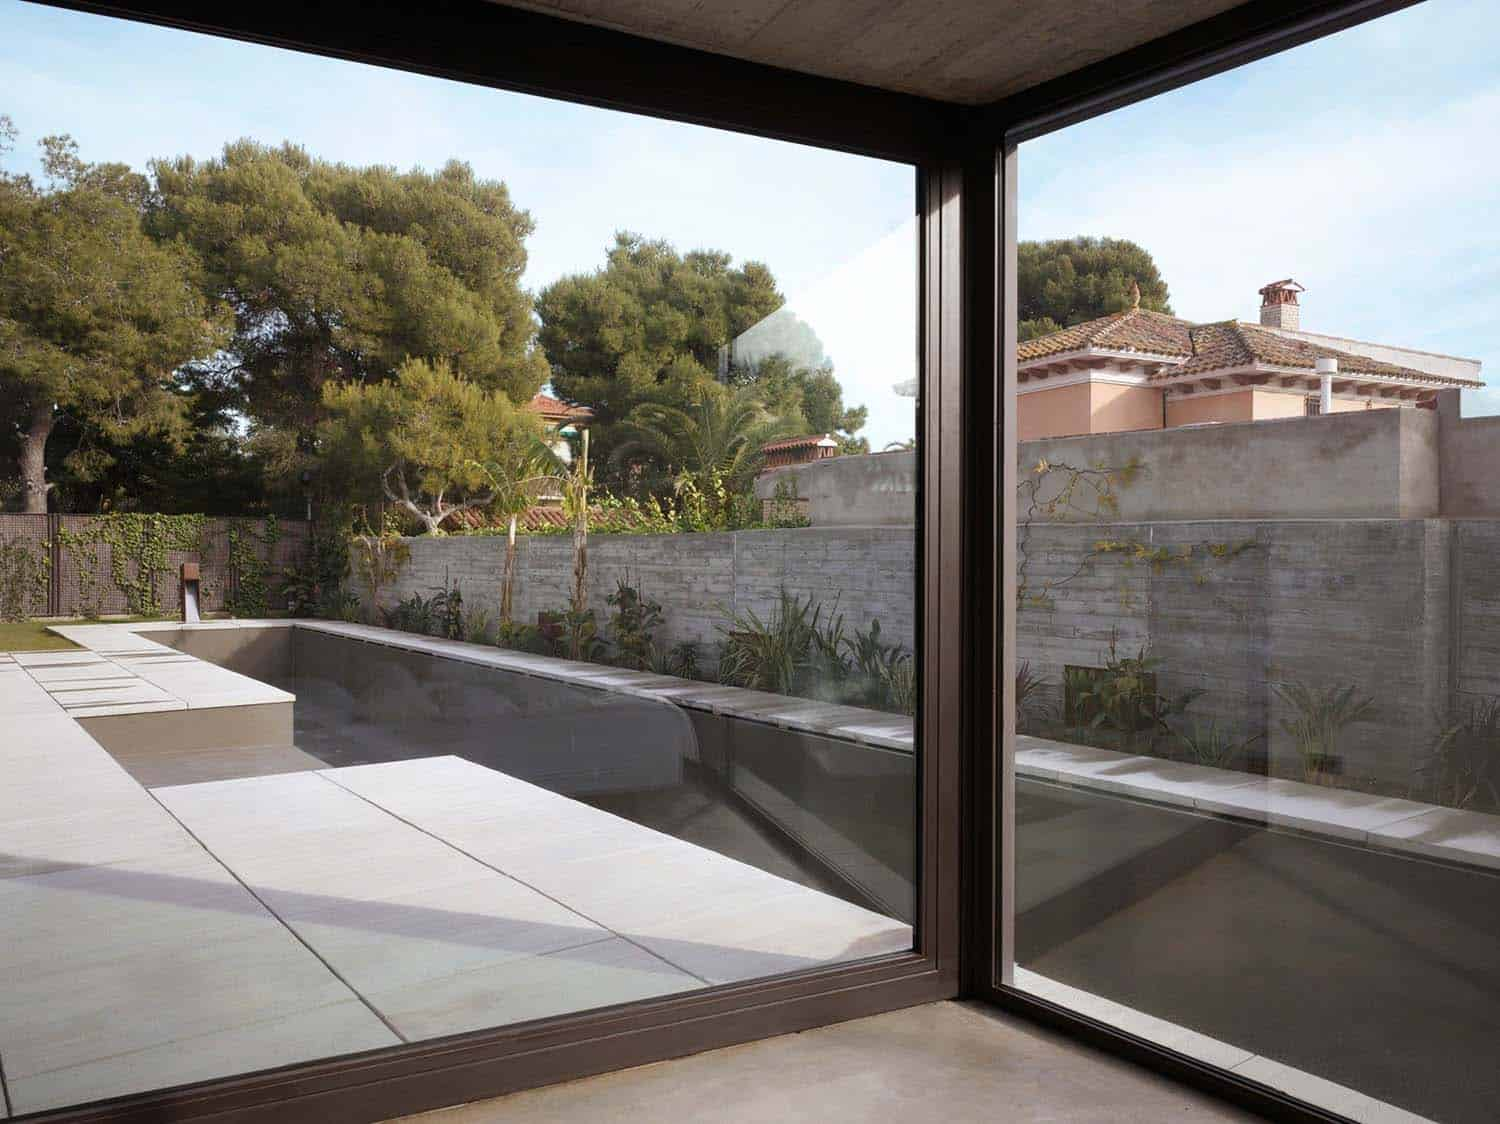 Studio Sitges-Olson Kundig Architects-27-1 Kindesign